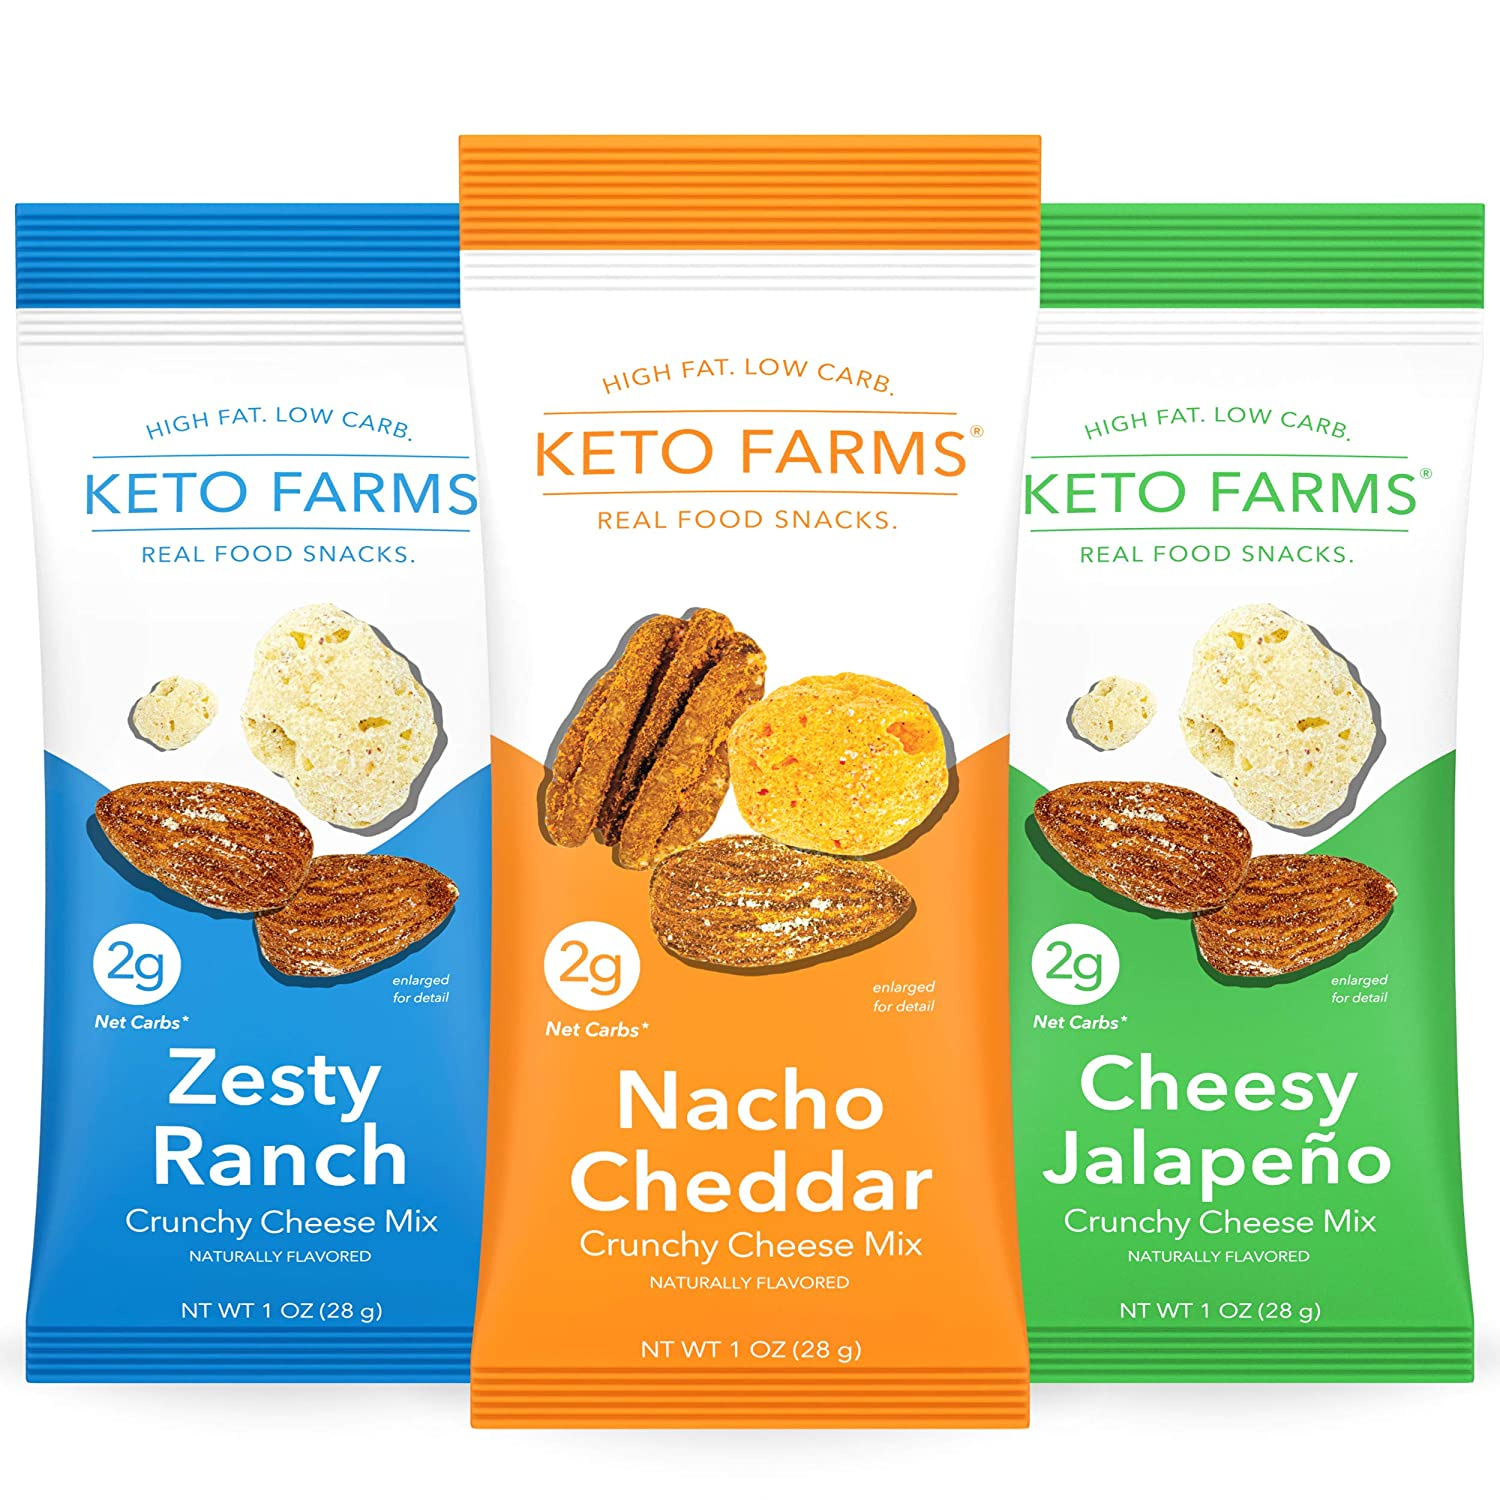 Keto Farms, Crunchy Cheese Mix, Keto Snacks (2g Net Carb) [Variety Pack] 1 Ounce, 6 Count | Keto Friendly Low Carb Snacks - Real Food, Bold Flavor, Satisfies Keto Chips Cravings, Portion Control